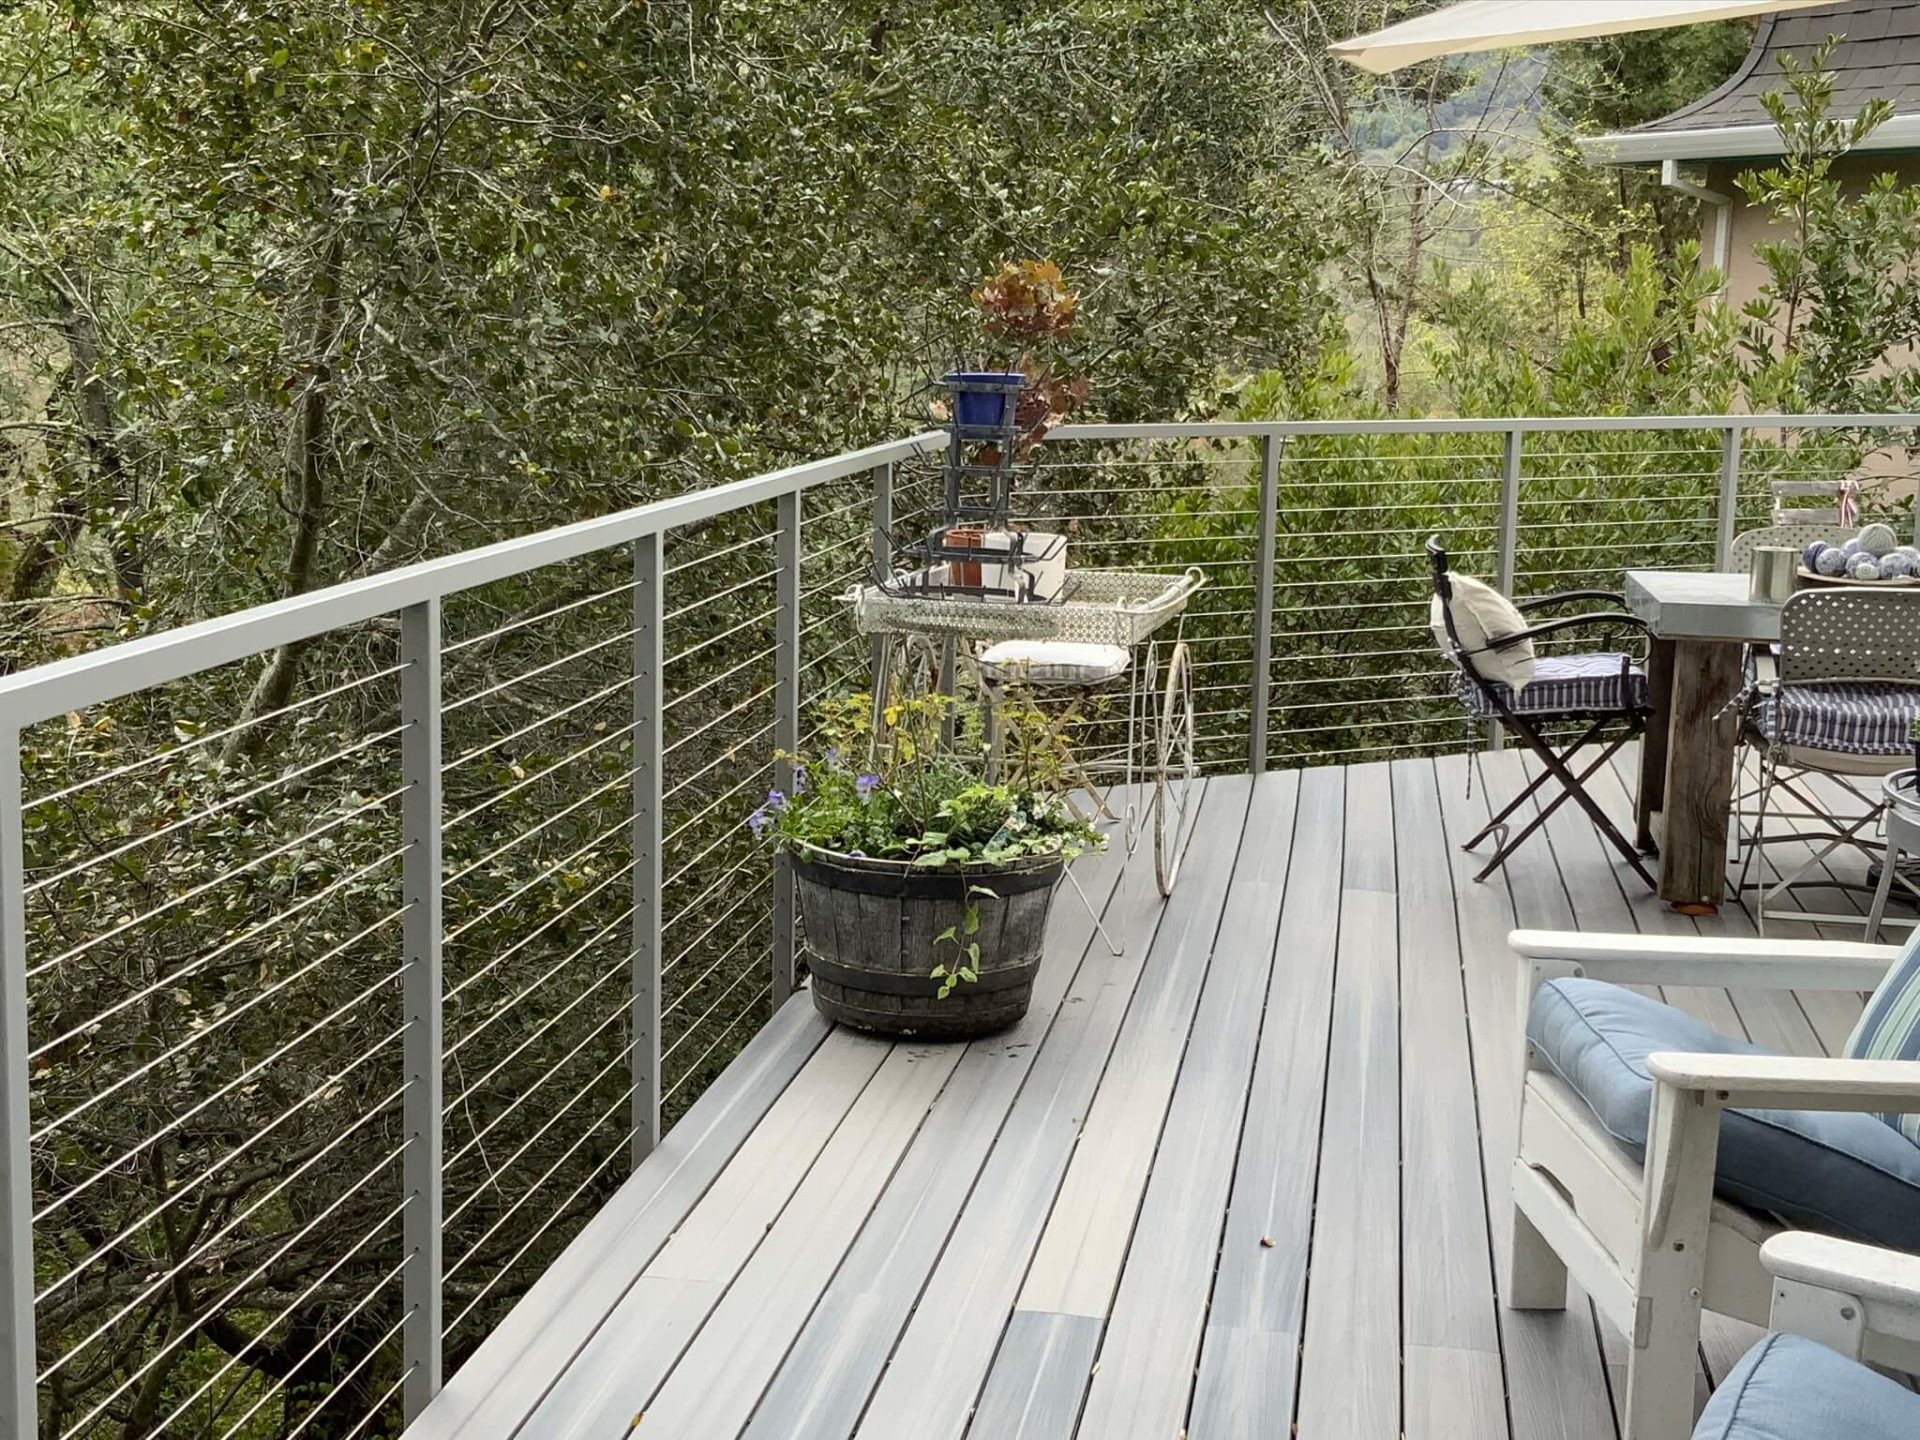 stainless steel cable railing installation on a patio deck